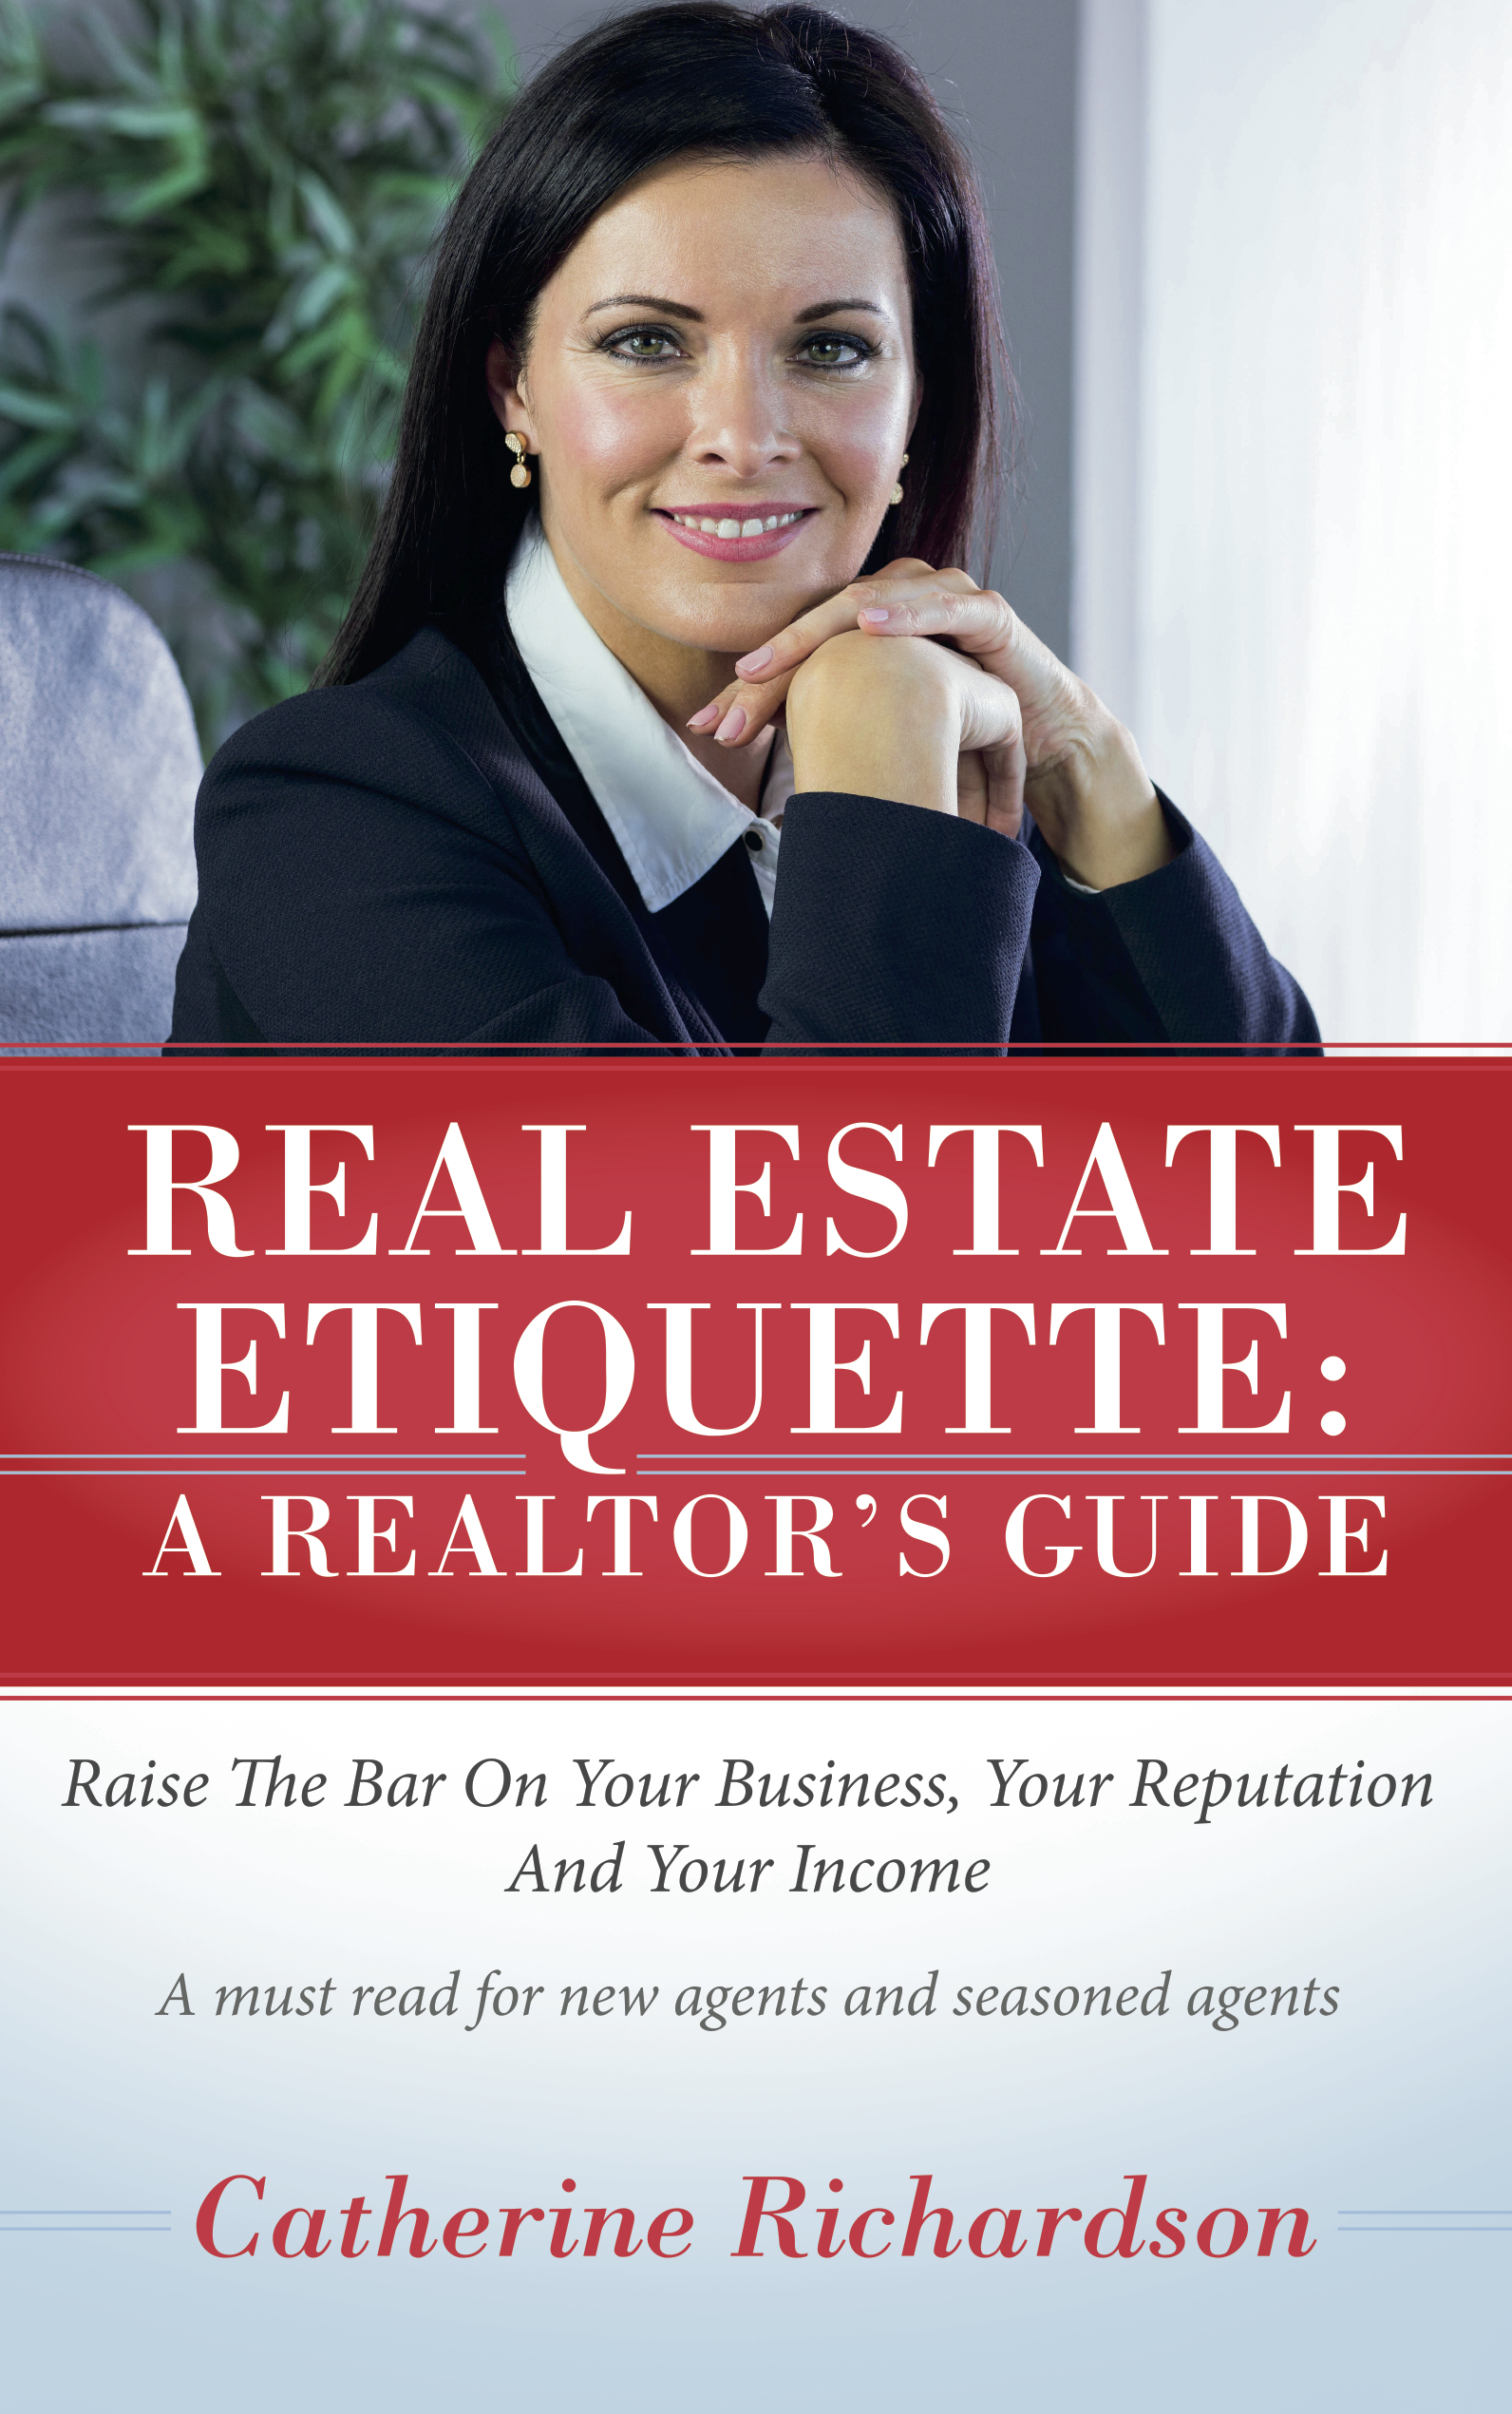 Real Estate Etiquette - A Realtors Guide: Raise the Bar On Your Business,  Your Reputation and Your Income Catherine Richardson